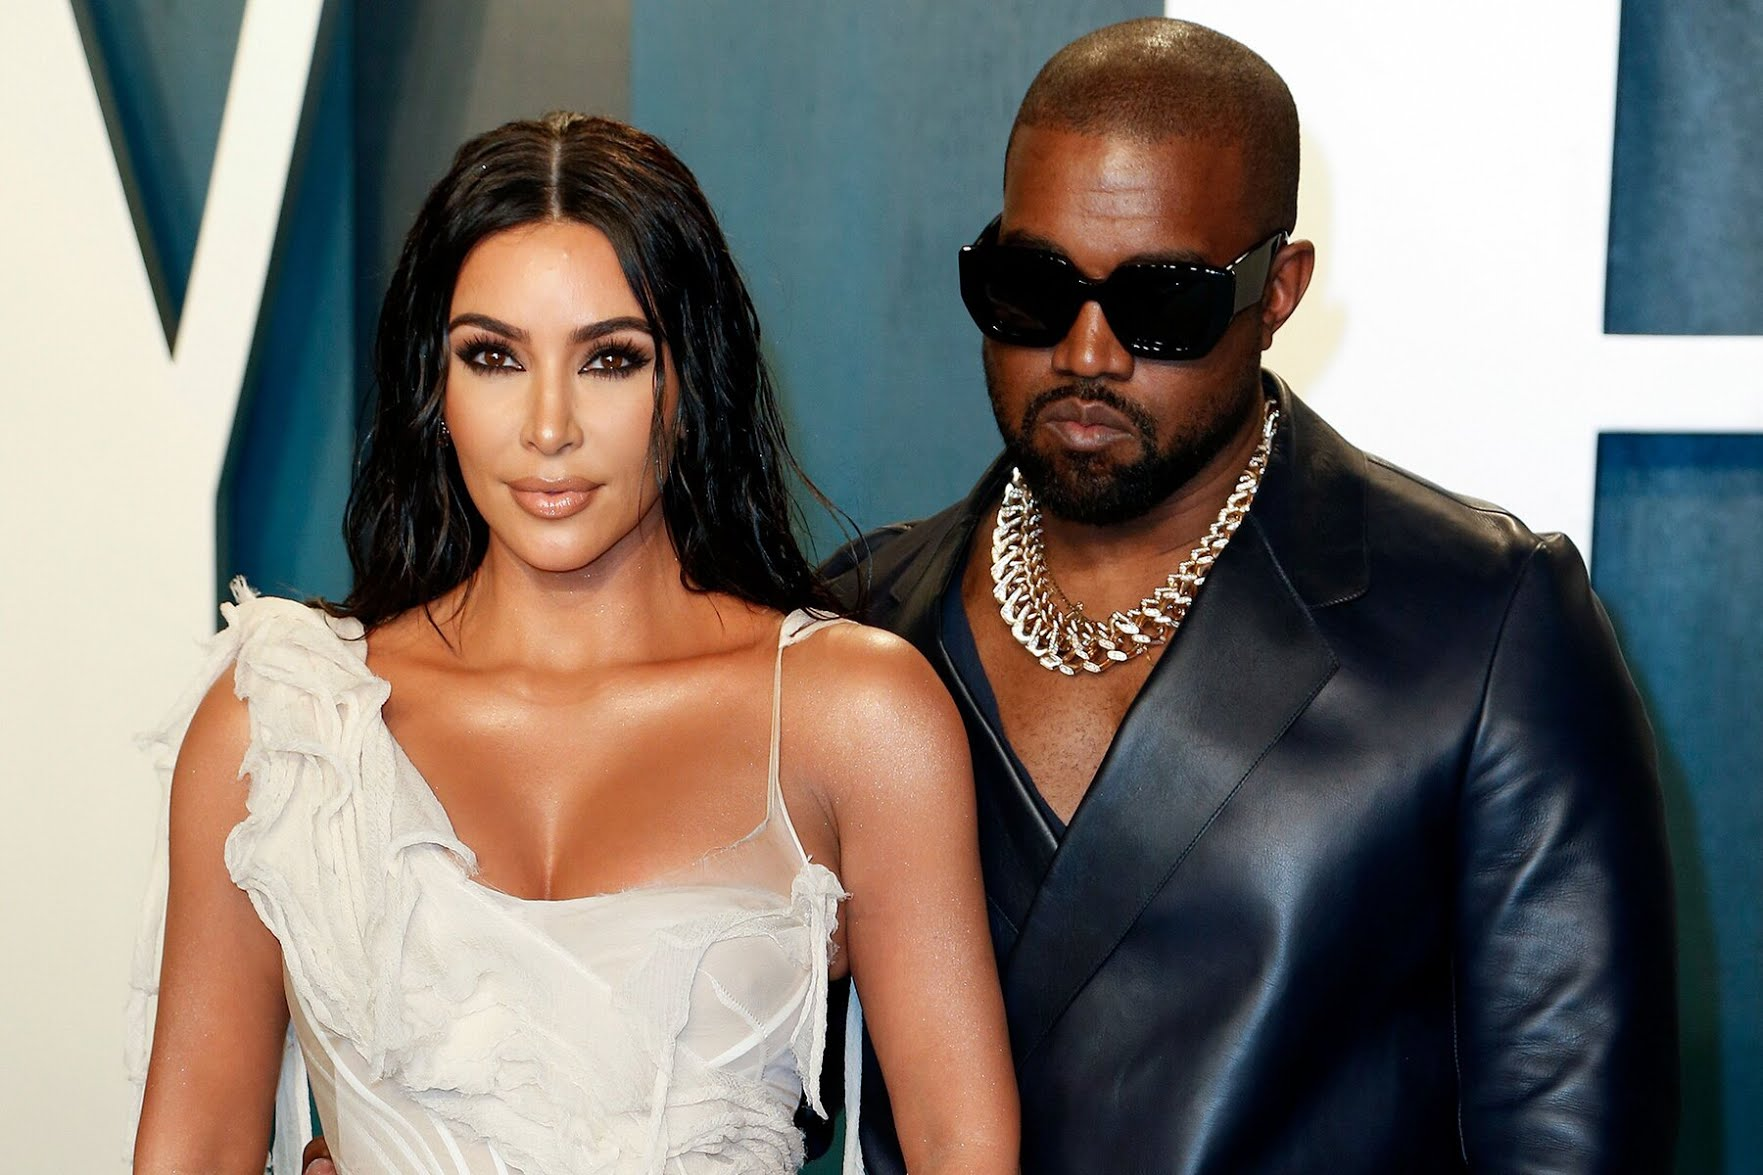 Kim Kardashian West and Kanye West at Vanity Fair's 2020 Oscars after-party.